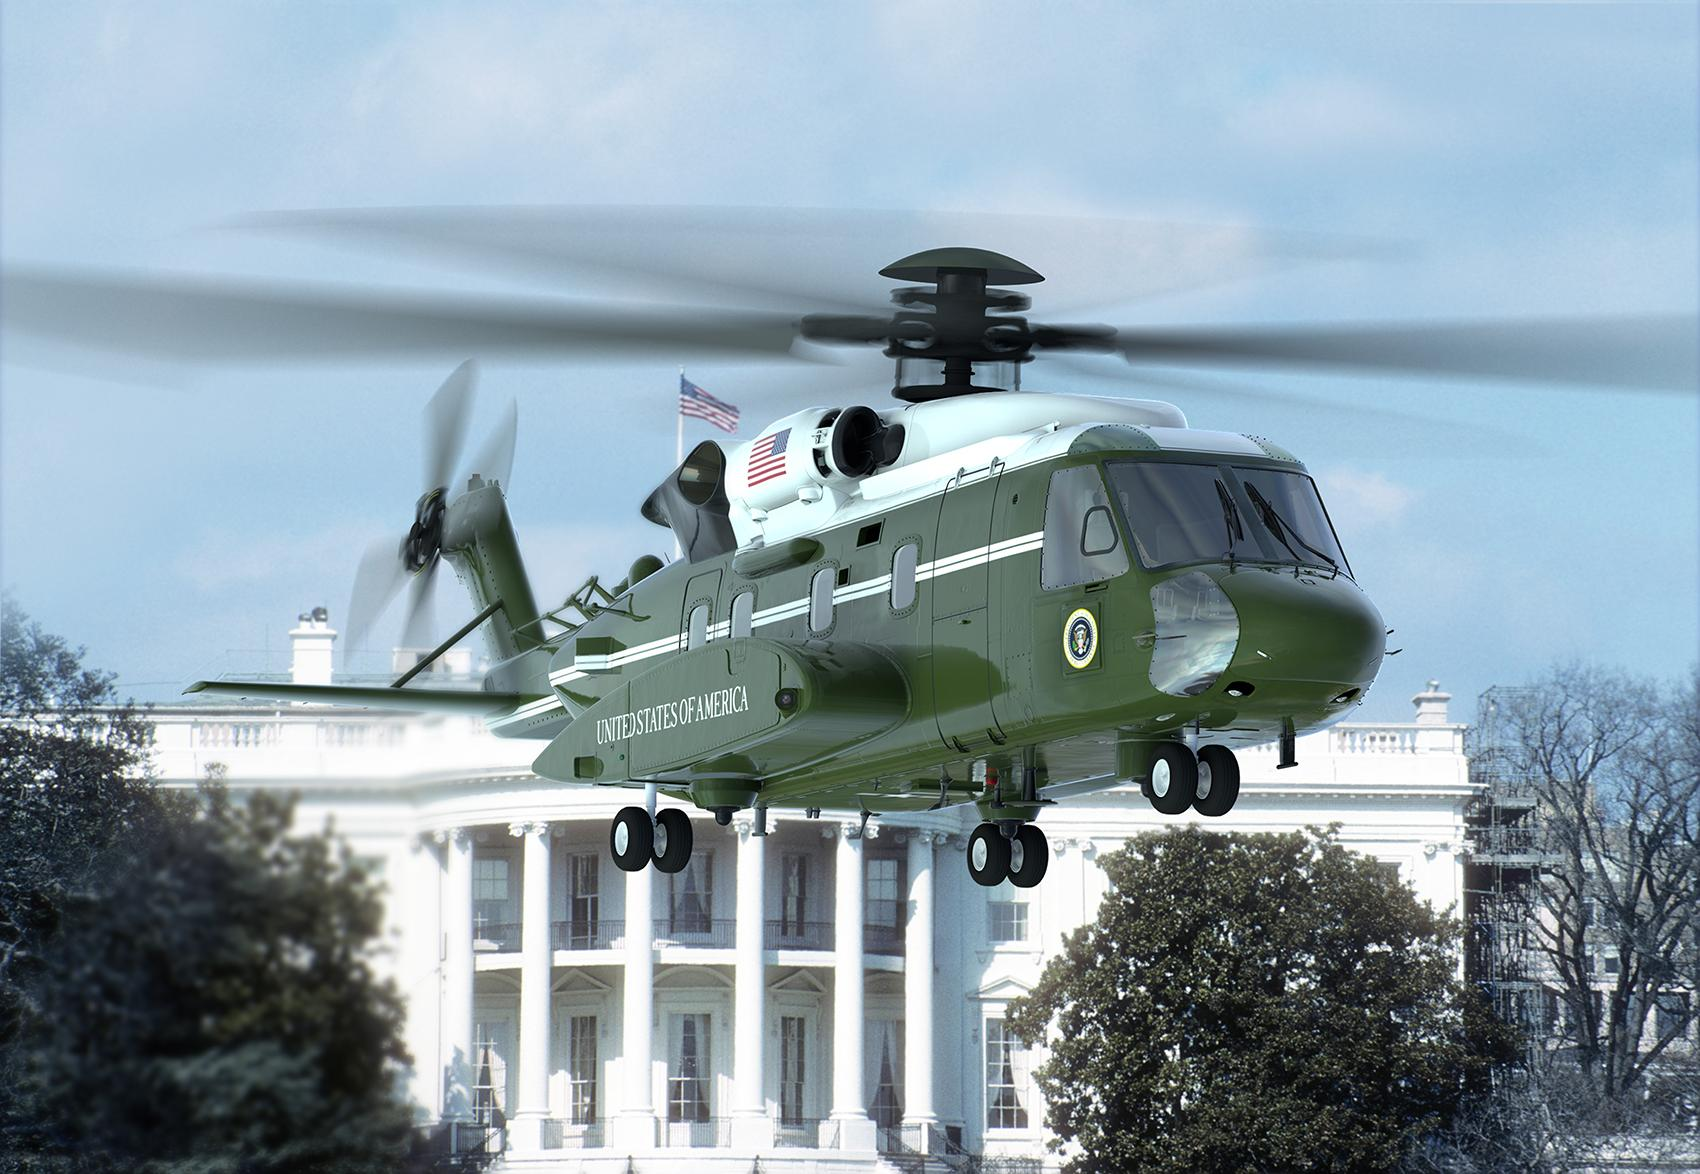 Government Accountability Office Sees Possible Delays in VH-92A Presidential Helicopter